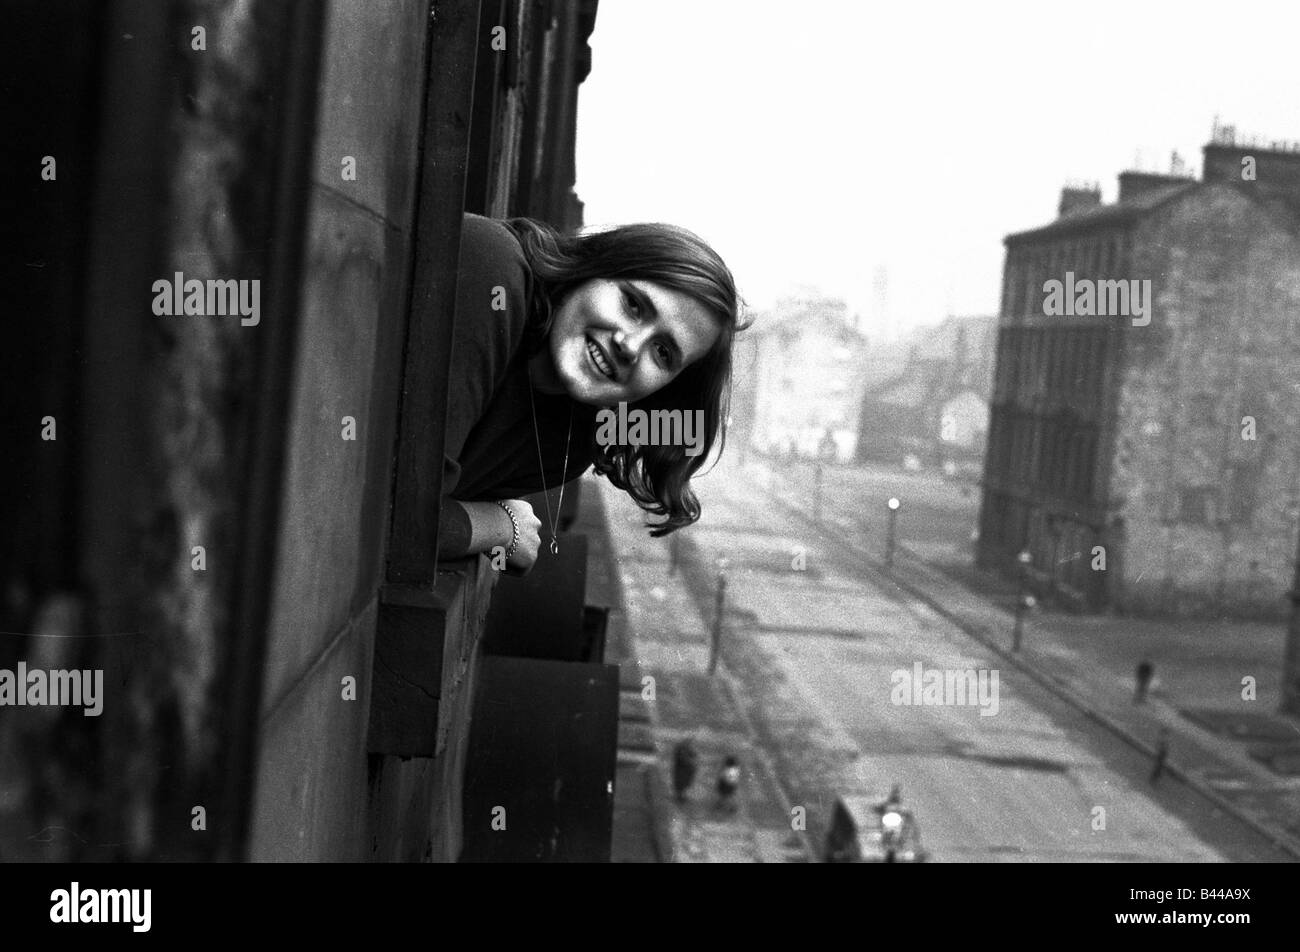 A youth worker pops her head out of one of the windows in a housing slums in the Gorbals district of Glasgow January Stock Photo